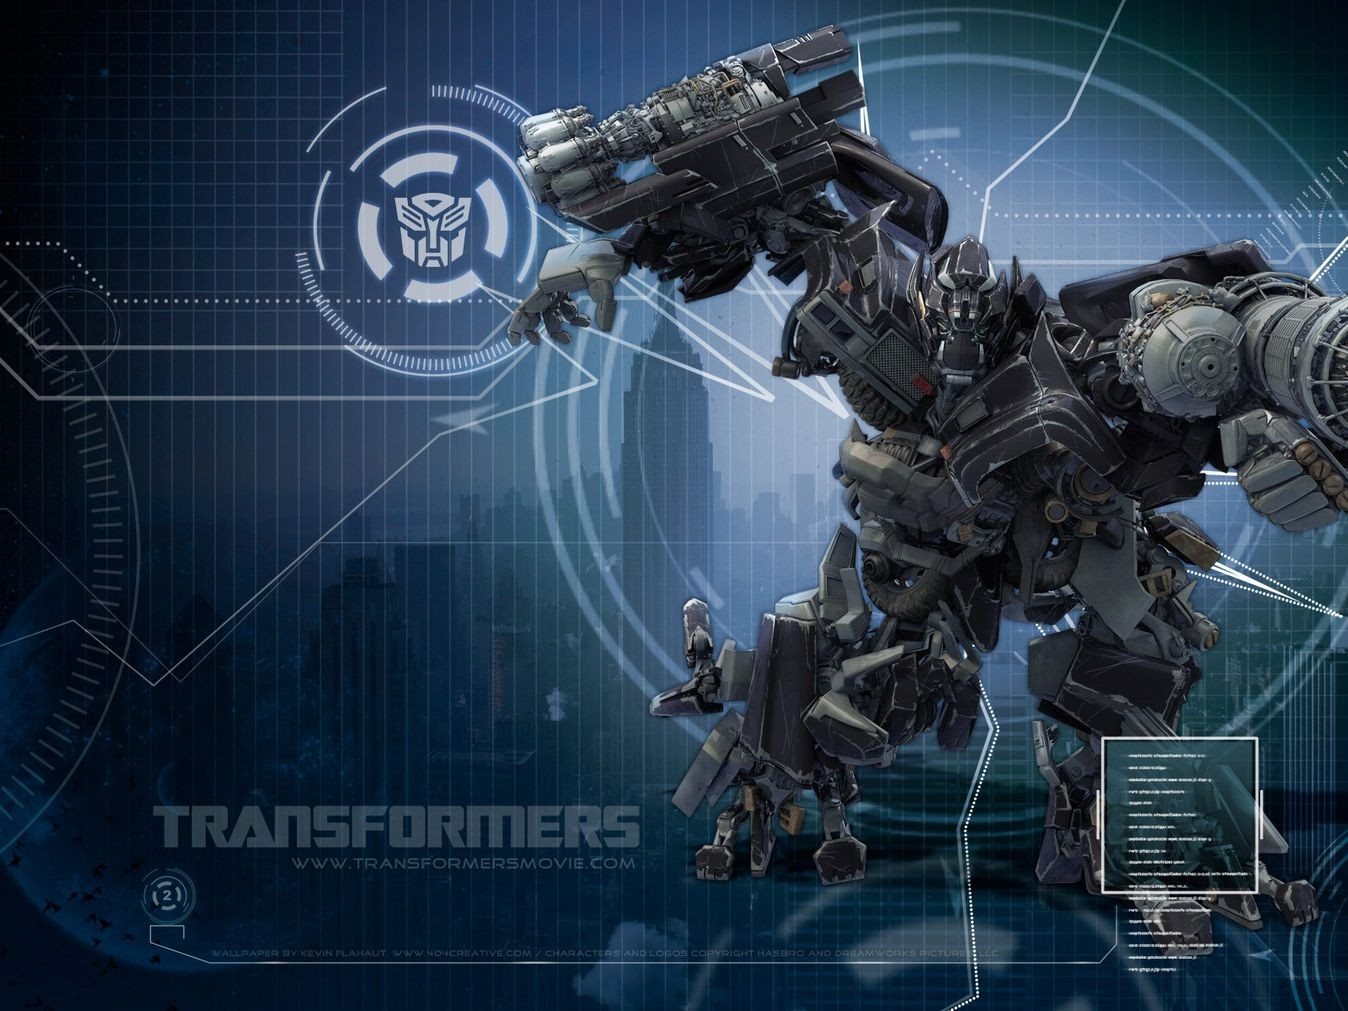 Transformers Blue Background